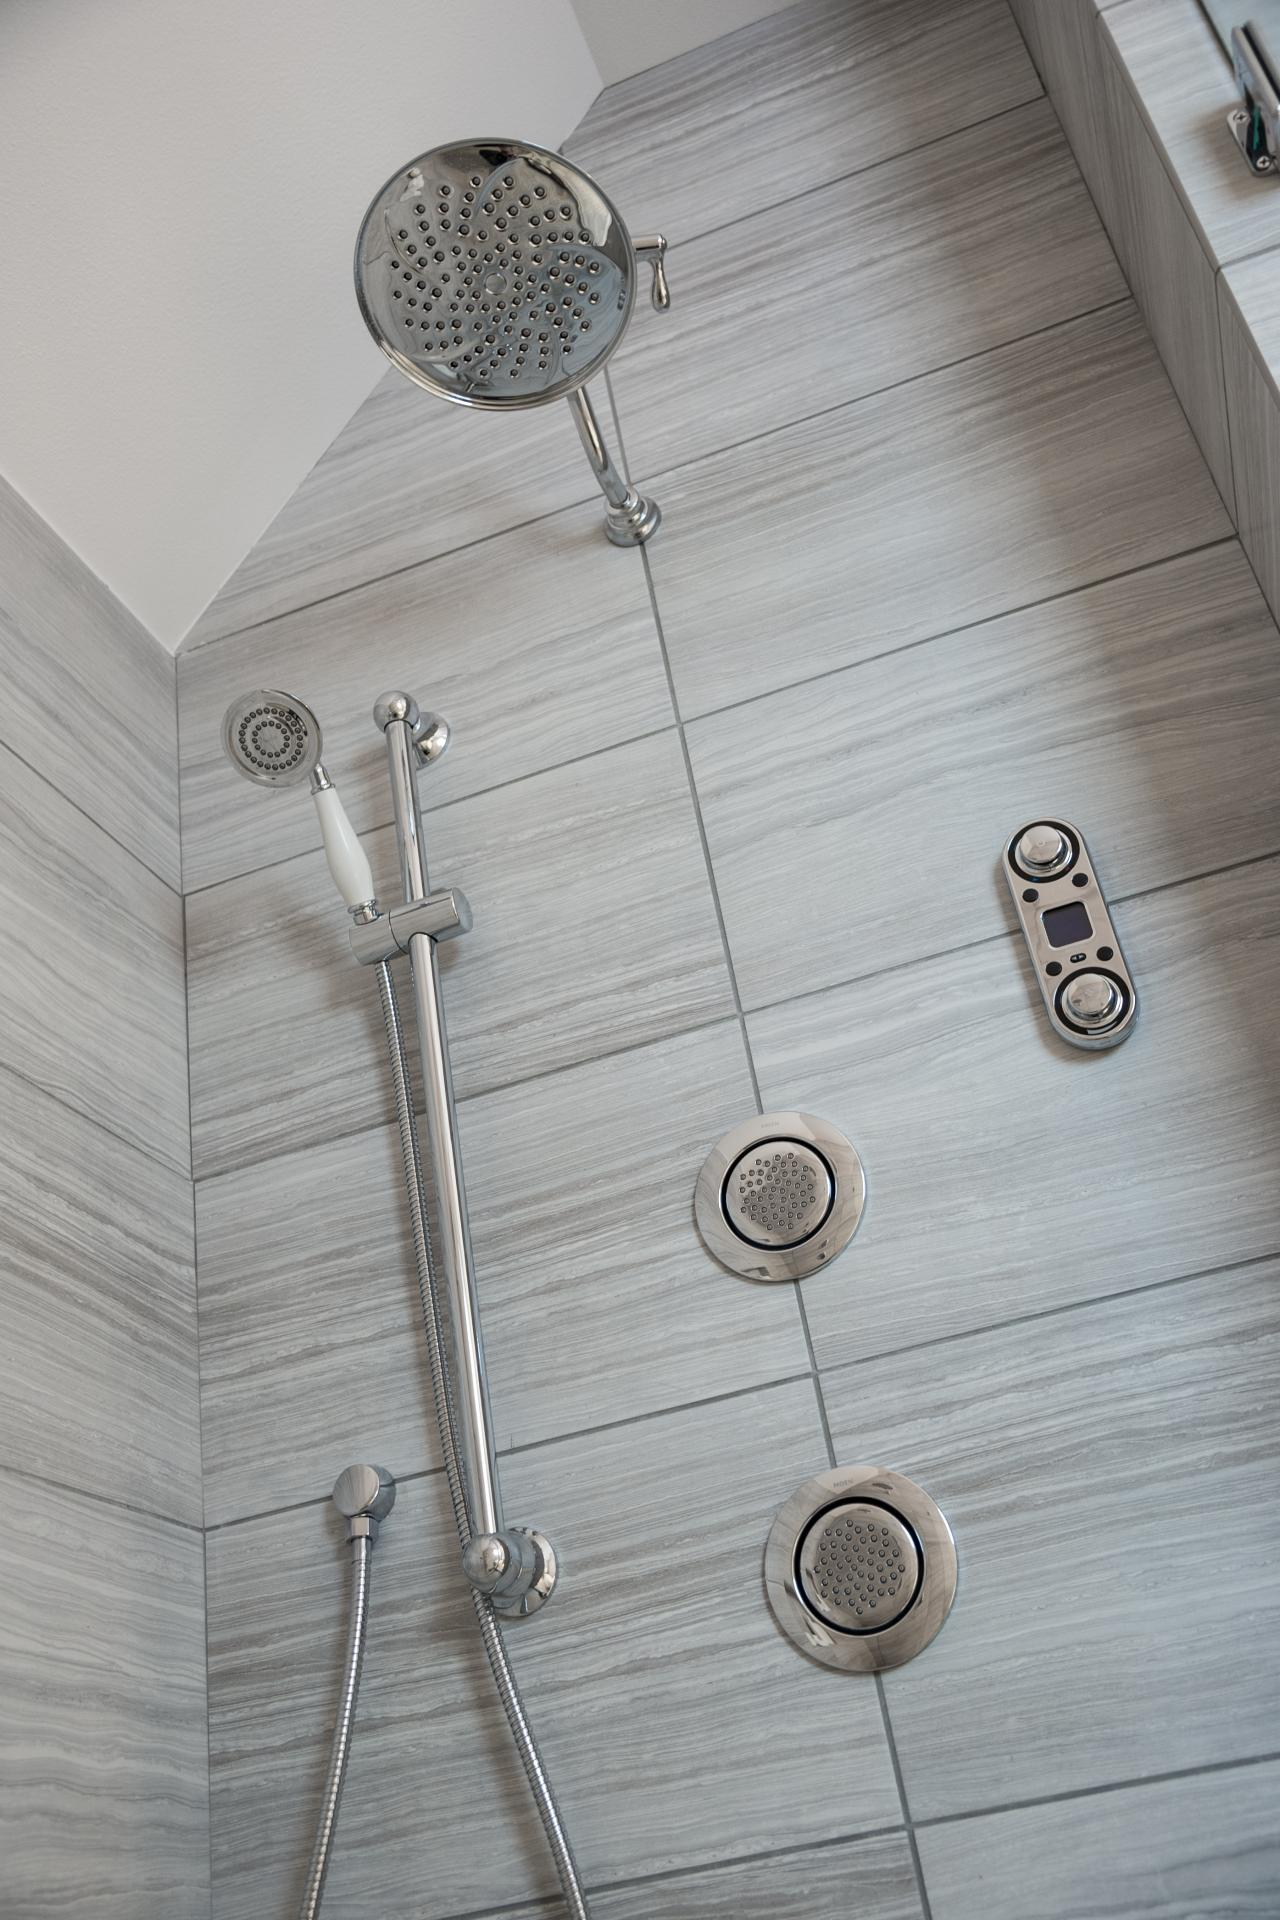 Moen Rain Shower Head Experience A Spa Luxury At Home